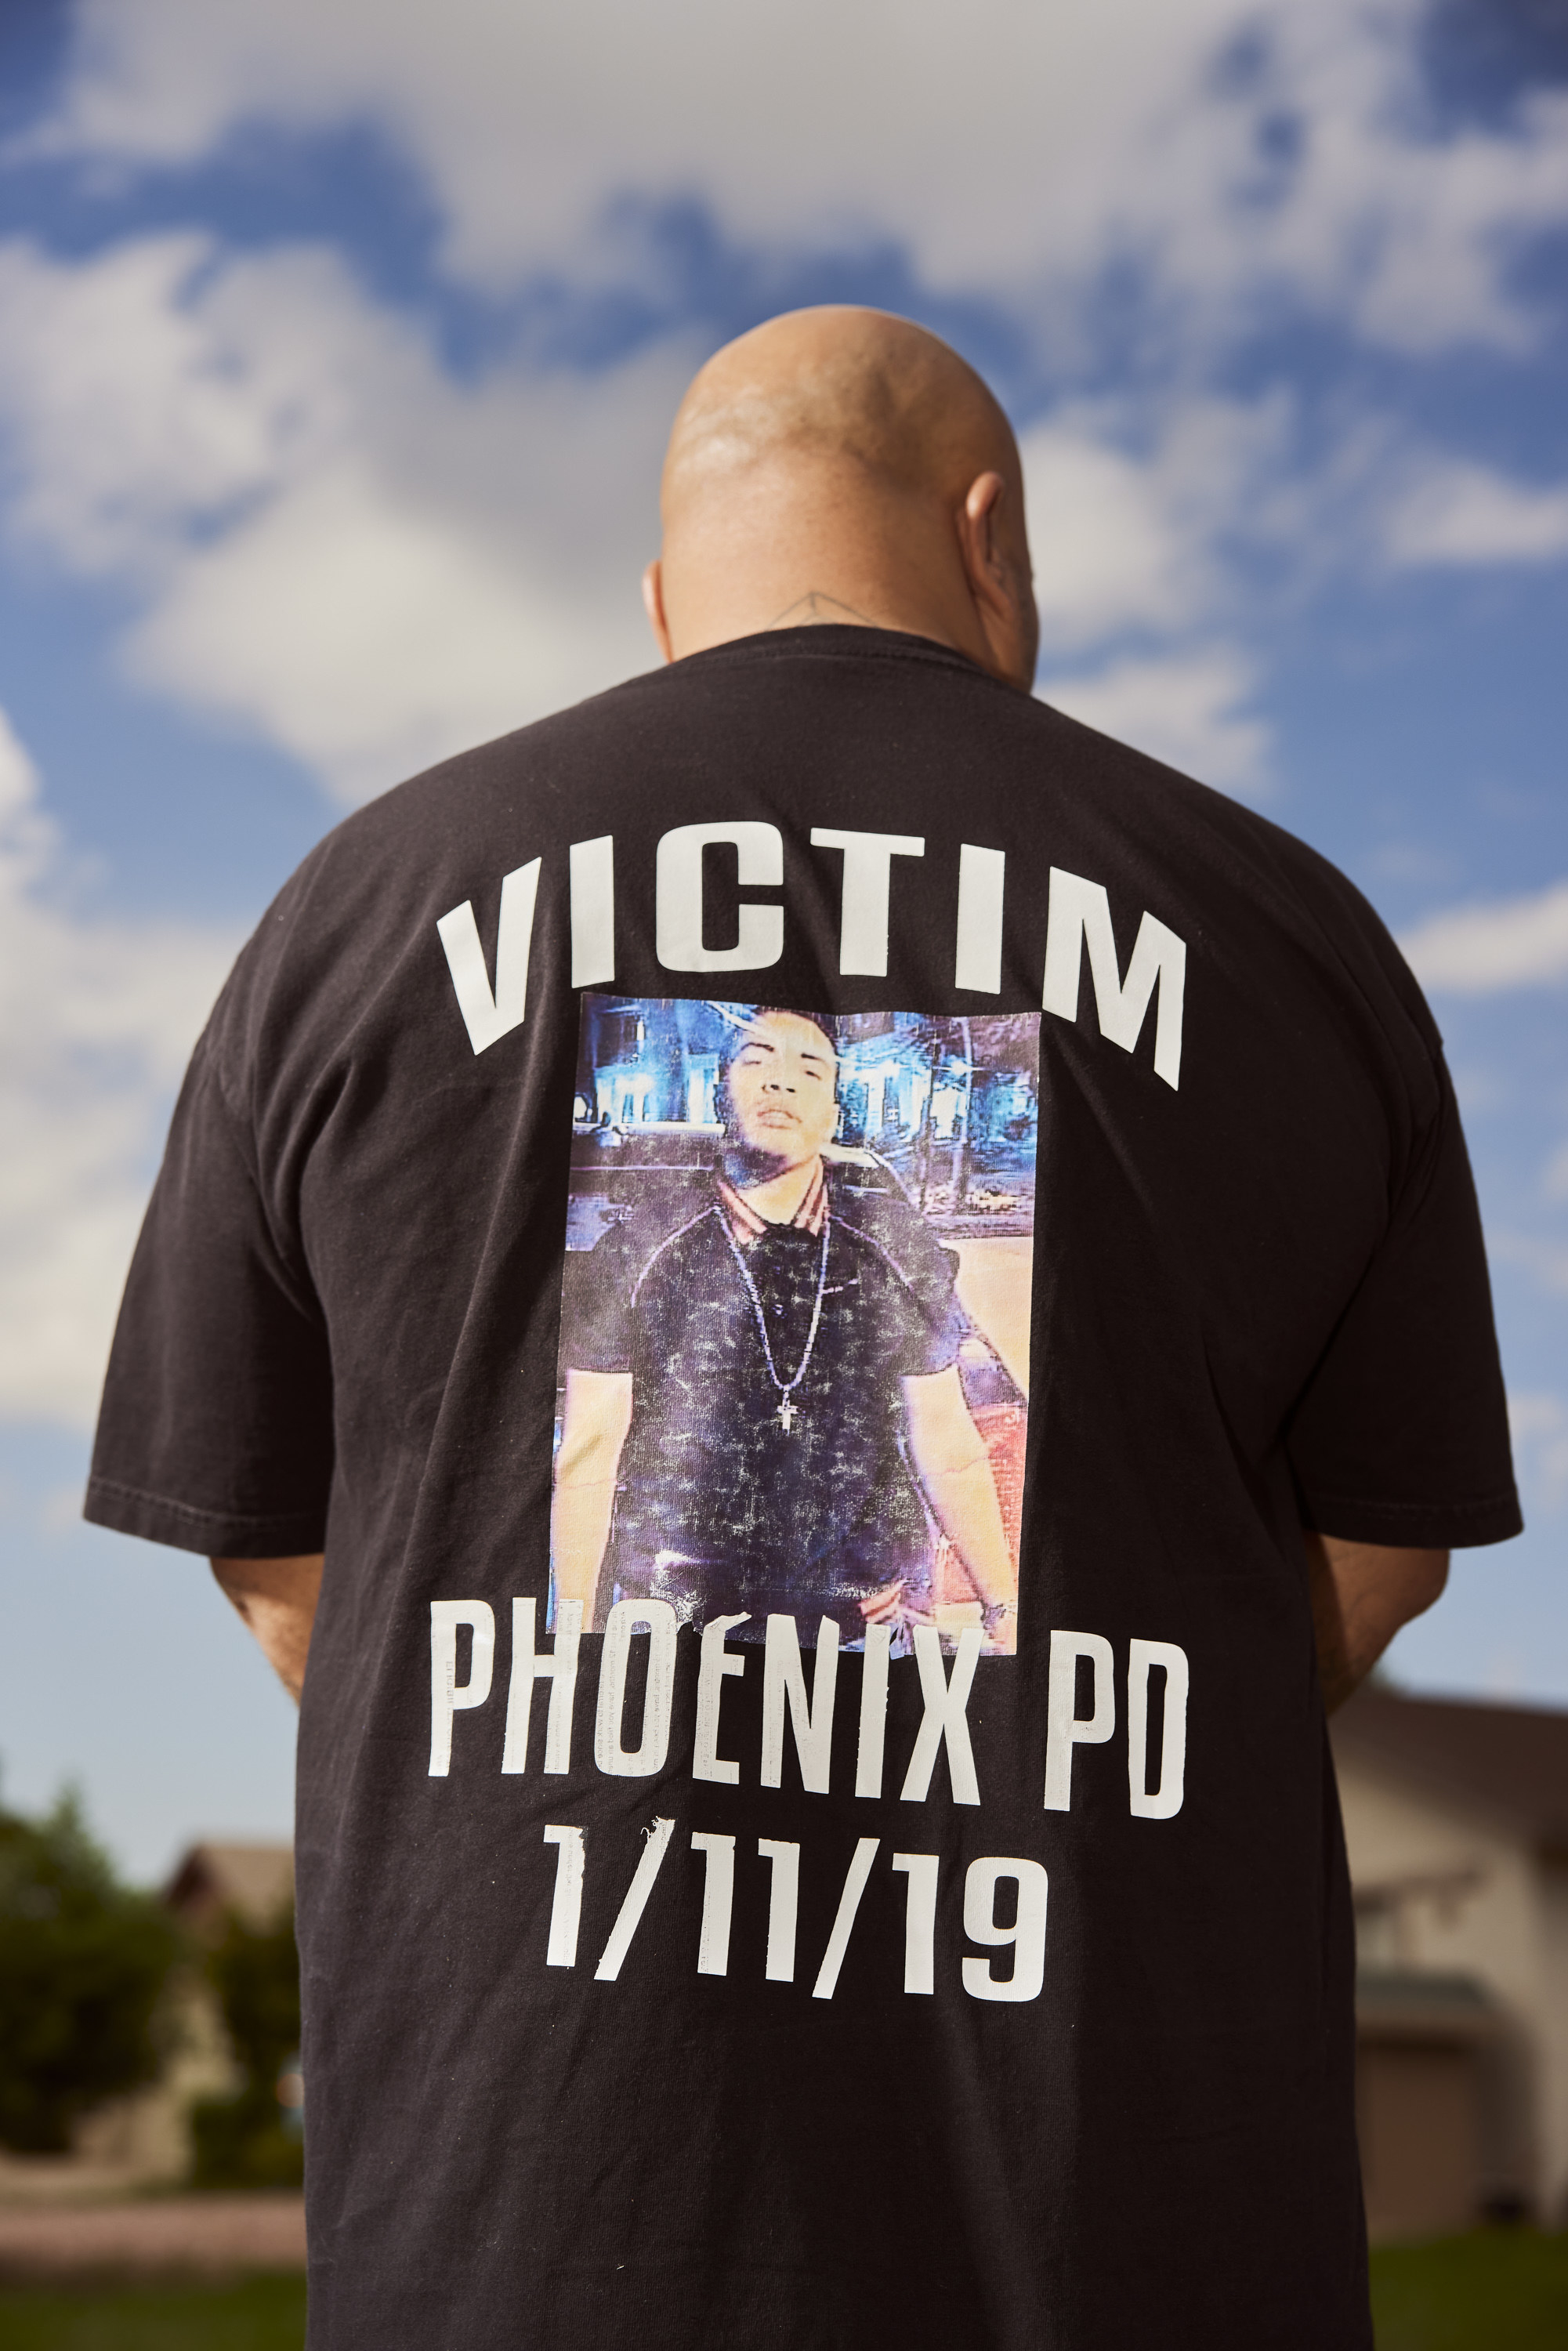 Roland photographed from the back, his T-shirt reads Victim Phoenix PD 1/11/19, with a photograph of Jacob